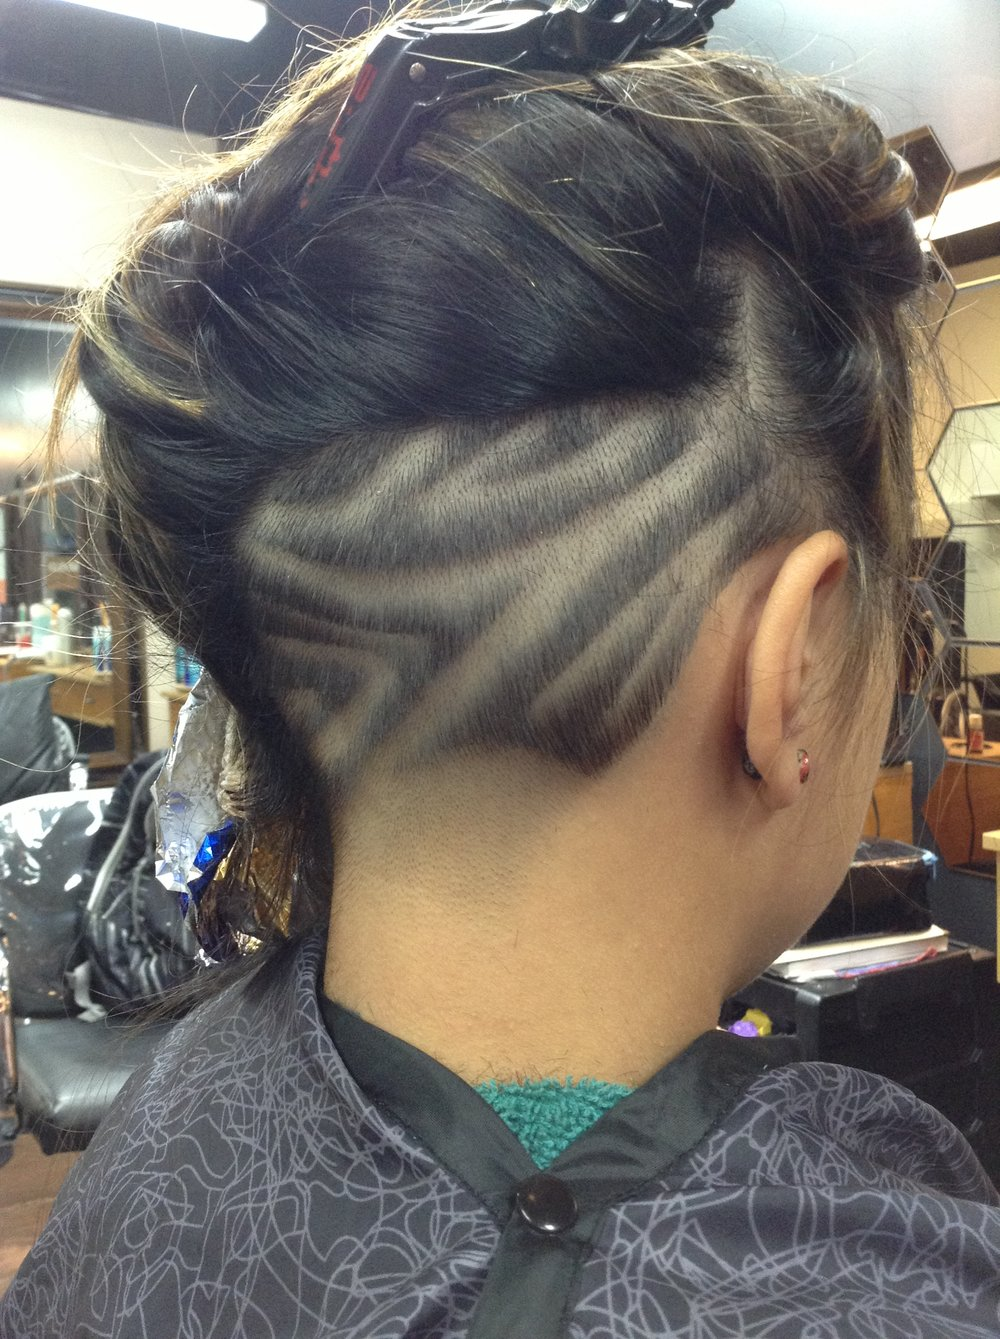 Free Hand Hair Graffiti  - These lines will make you look FUEGO!